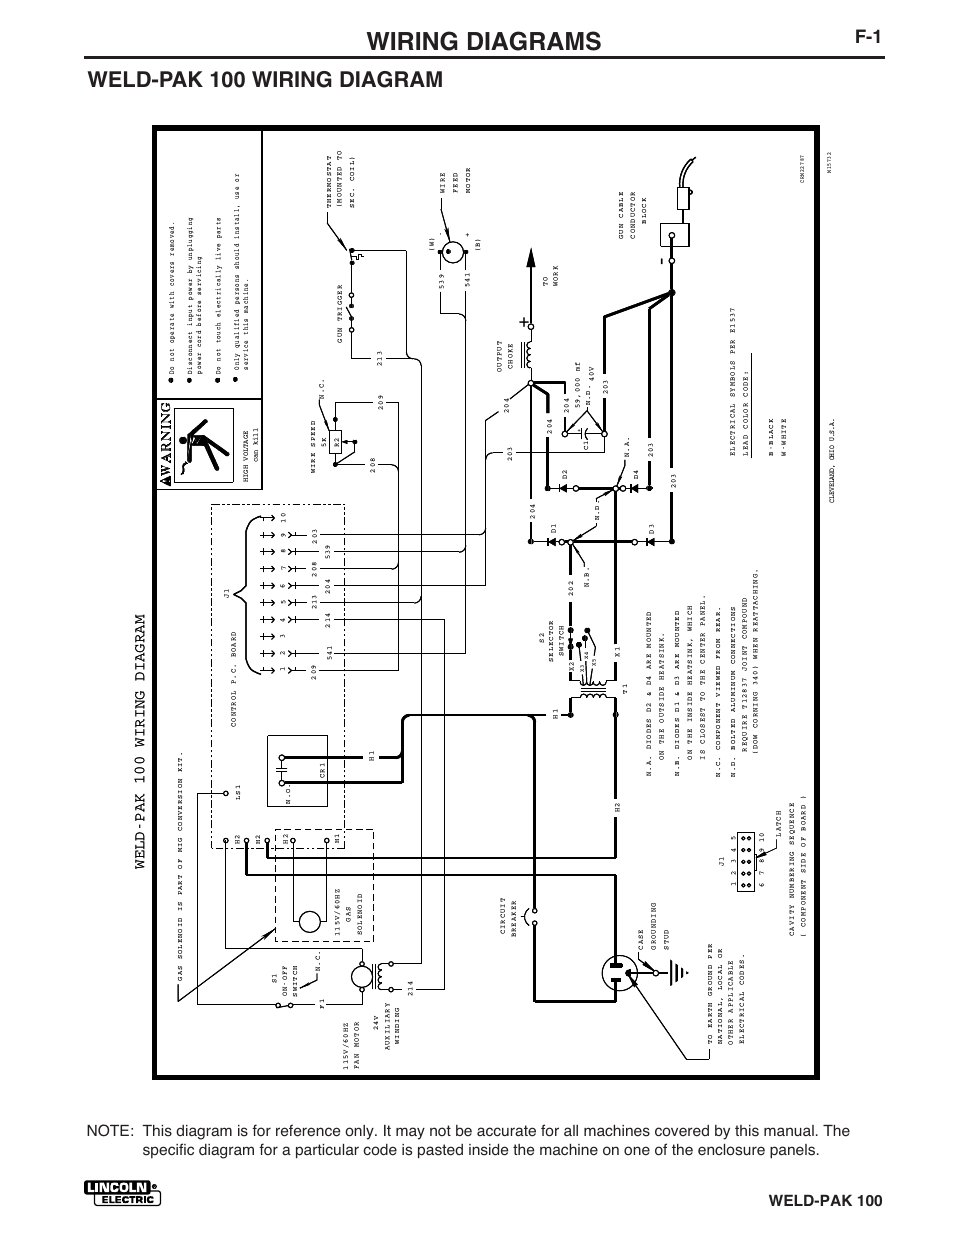 Wiring Diagrams, Weld Pak 100 Wiring Diagram, Weld Pak 100 Lincoln Lincoln  Continental 1997 Engine Diagram Lincoln Motor Wiring Diagram